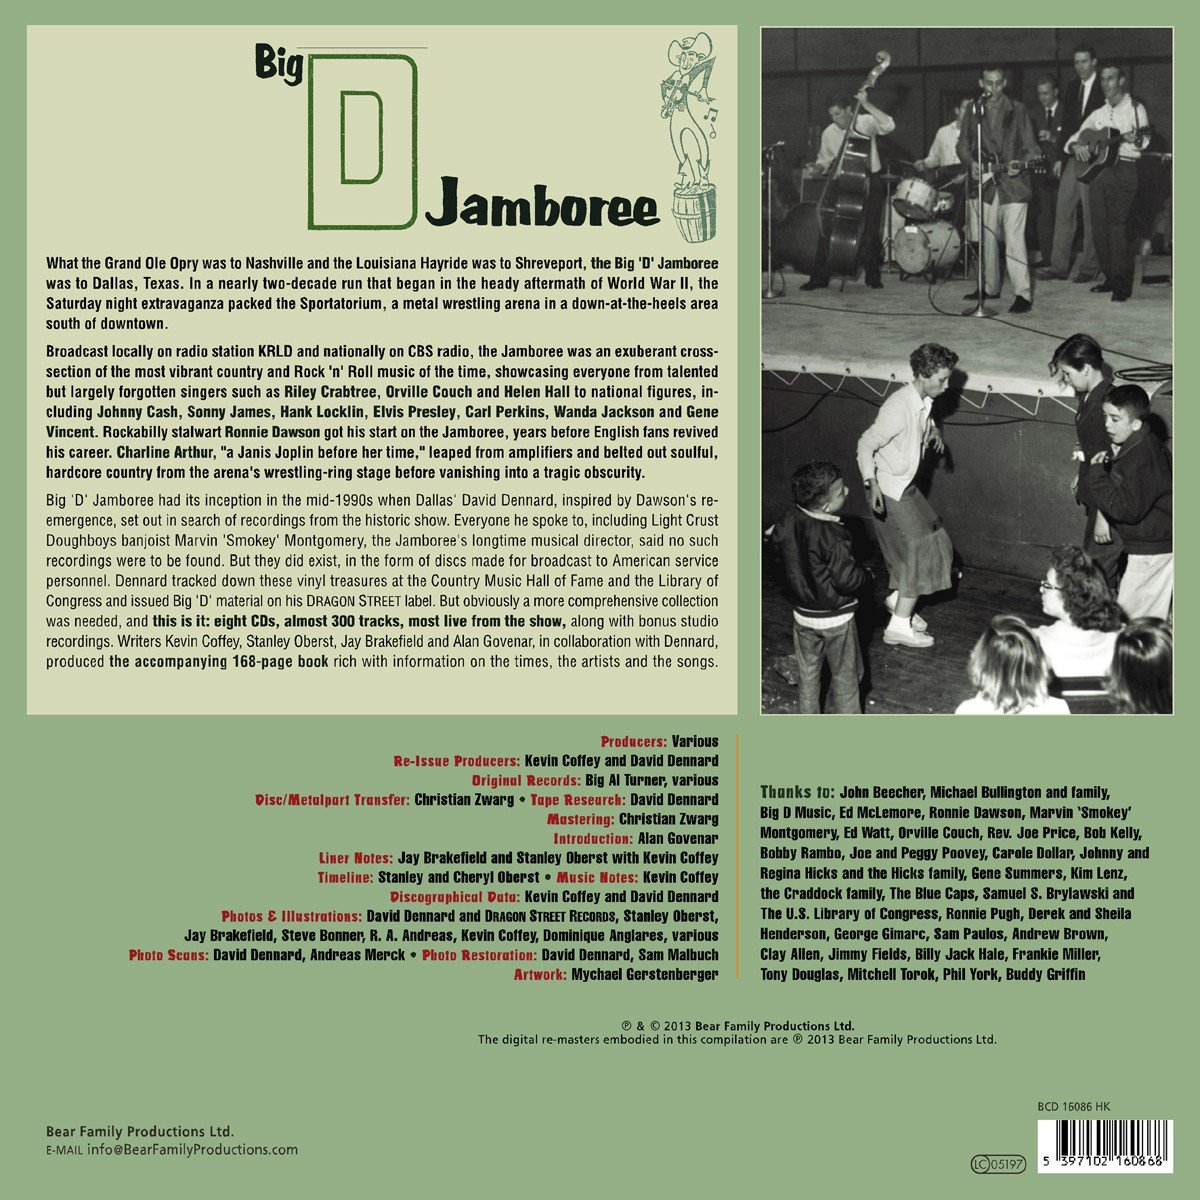 Big D Jamboree: Live Recordings From Dallas 1950-1958, Plus Demos and Rarities by Various - Record Label Profiles